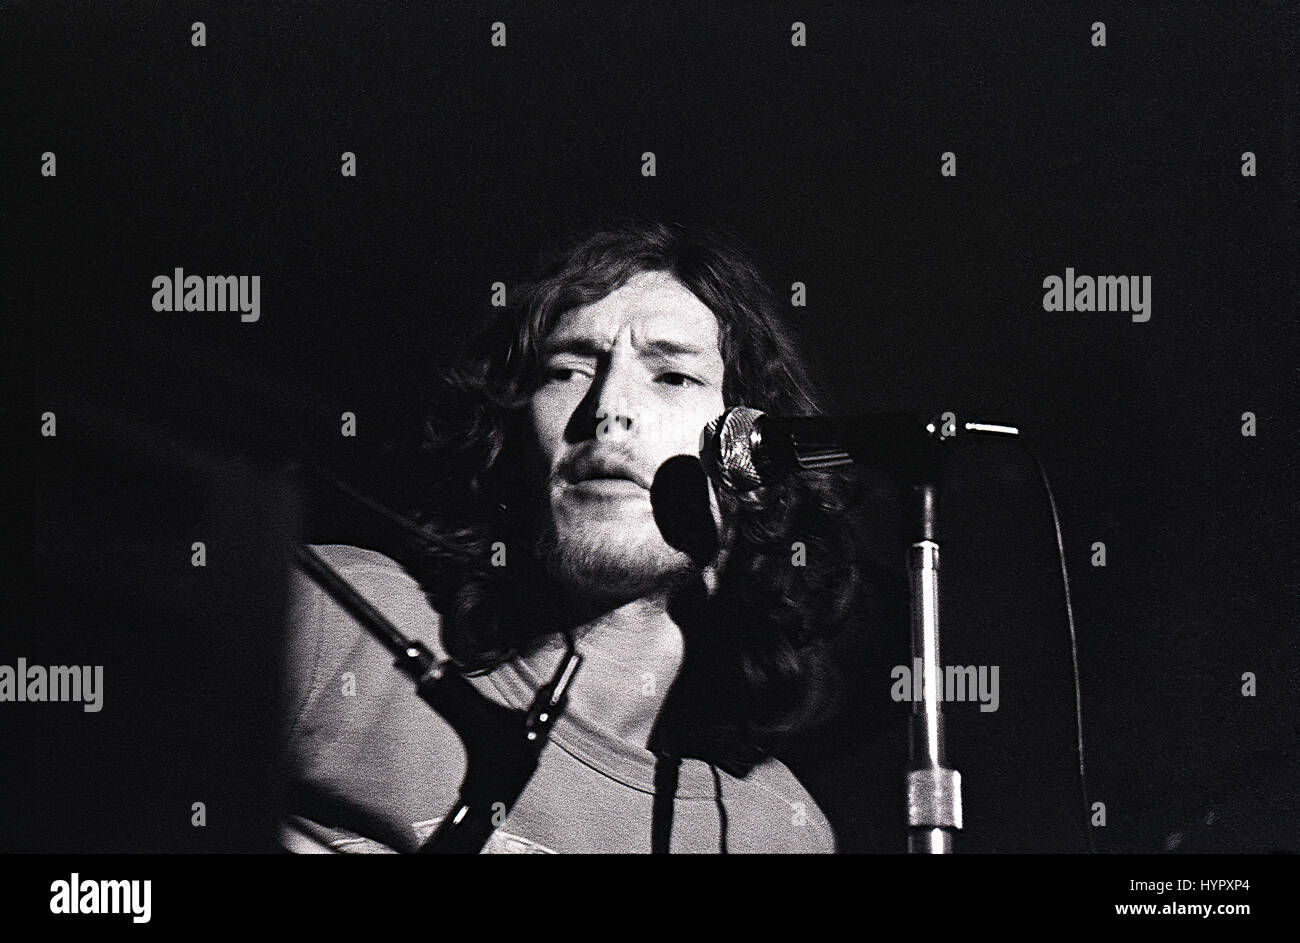 Steve Winwood performs with UK rock band Traffic in the Anson Rooms, Bristol University Students Union, on 25 April - Stock Image